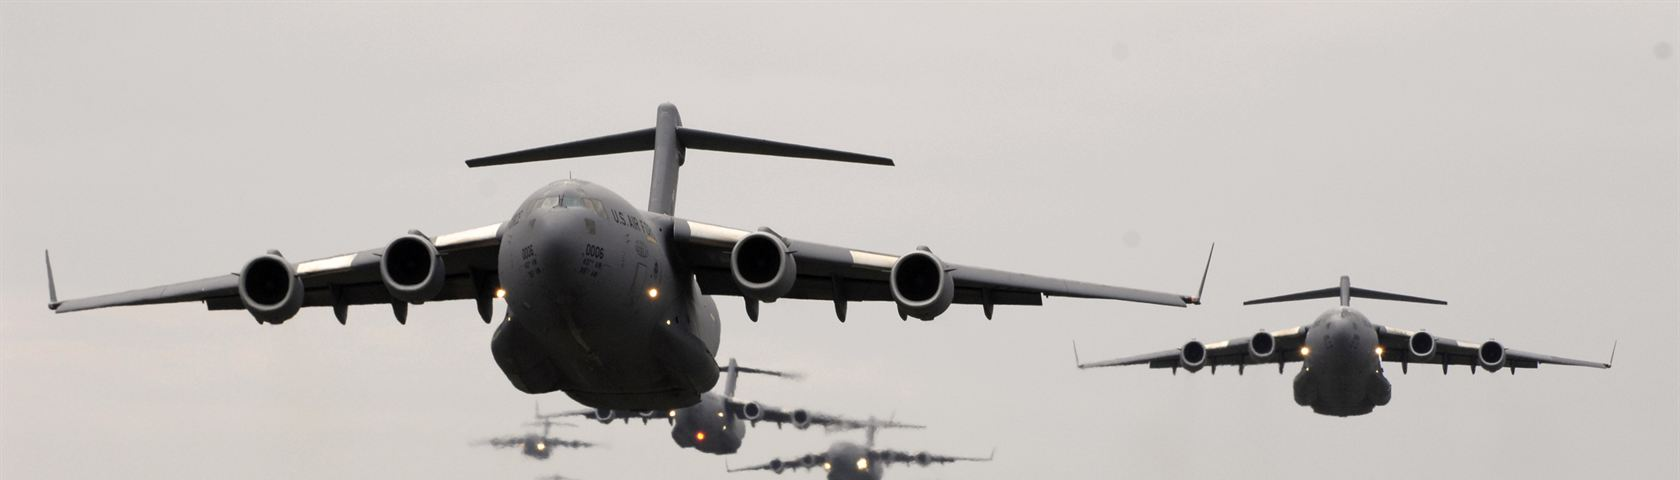 C-17 in Flight